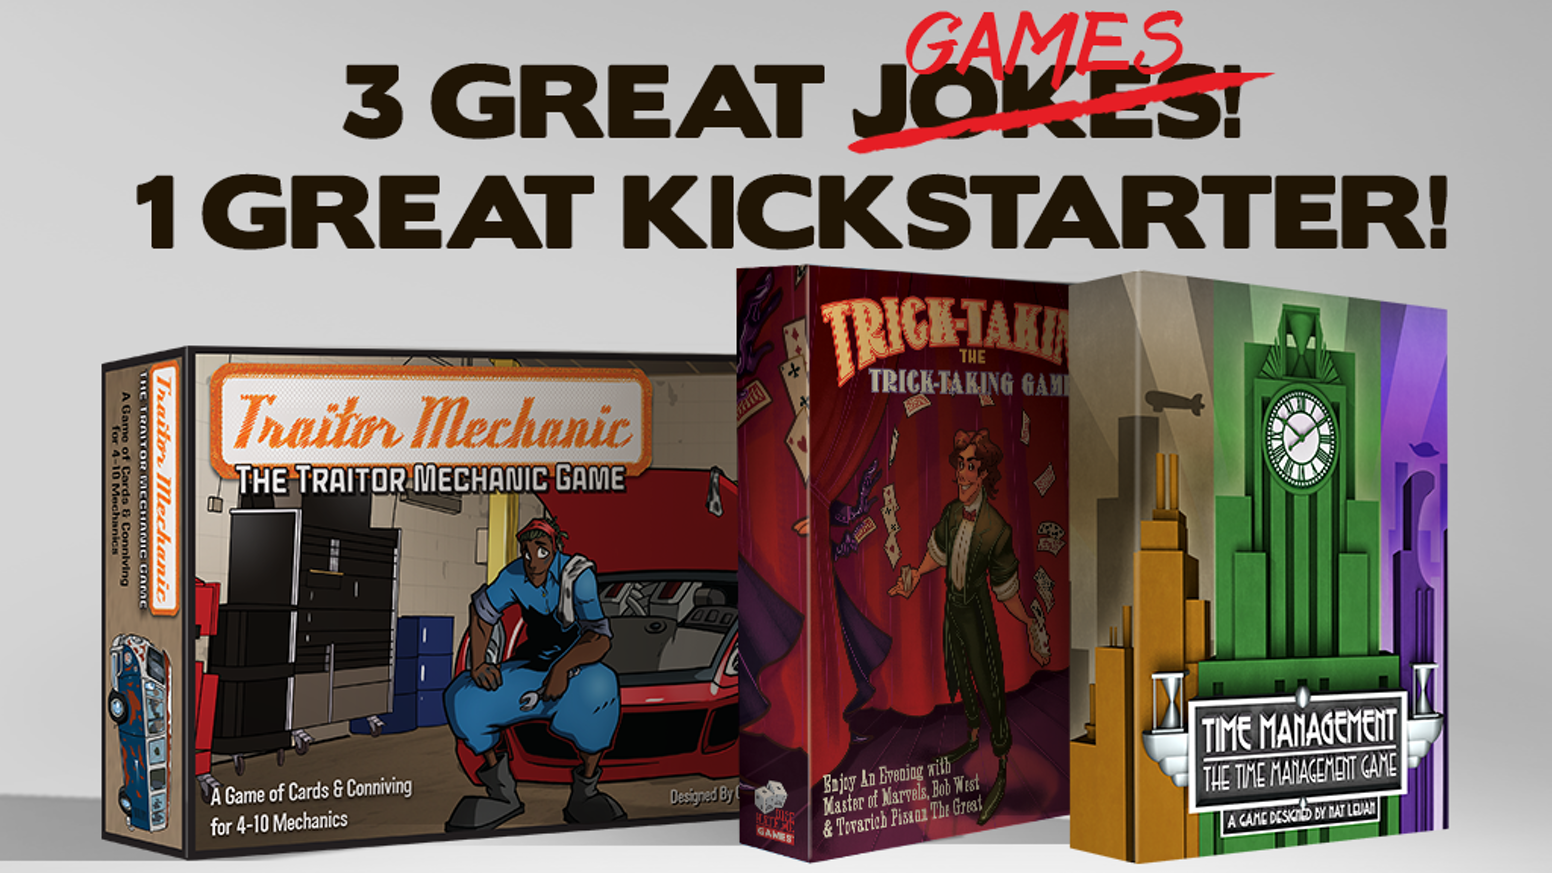 Time Management: The Time Management Game, Trick-Taking: The Trick-Taking Game, and Traitor Mechanic: The Traitor Mechanic Game!